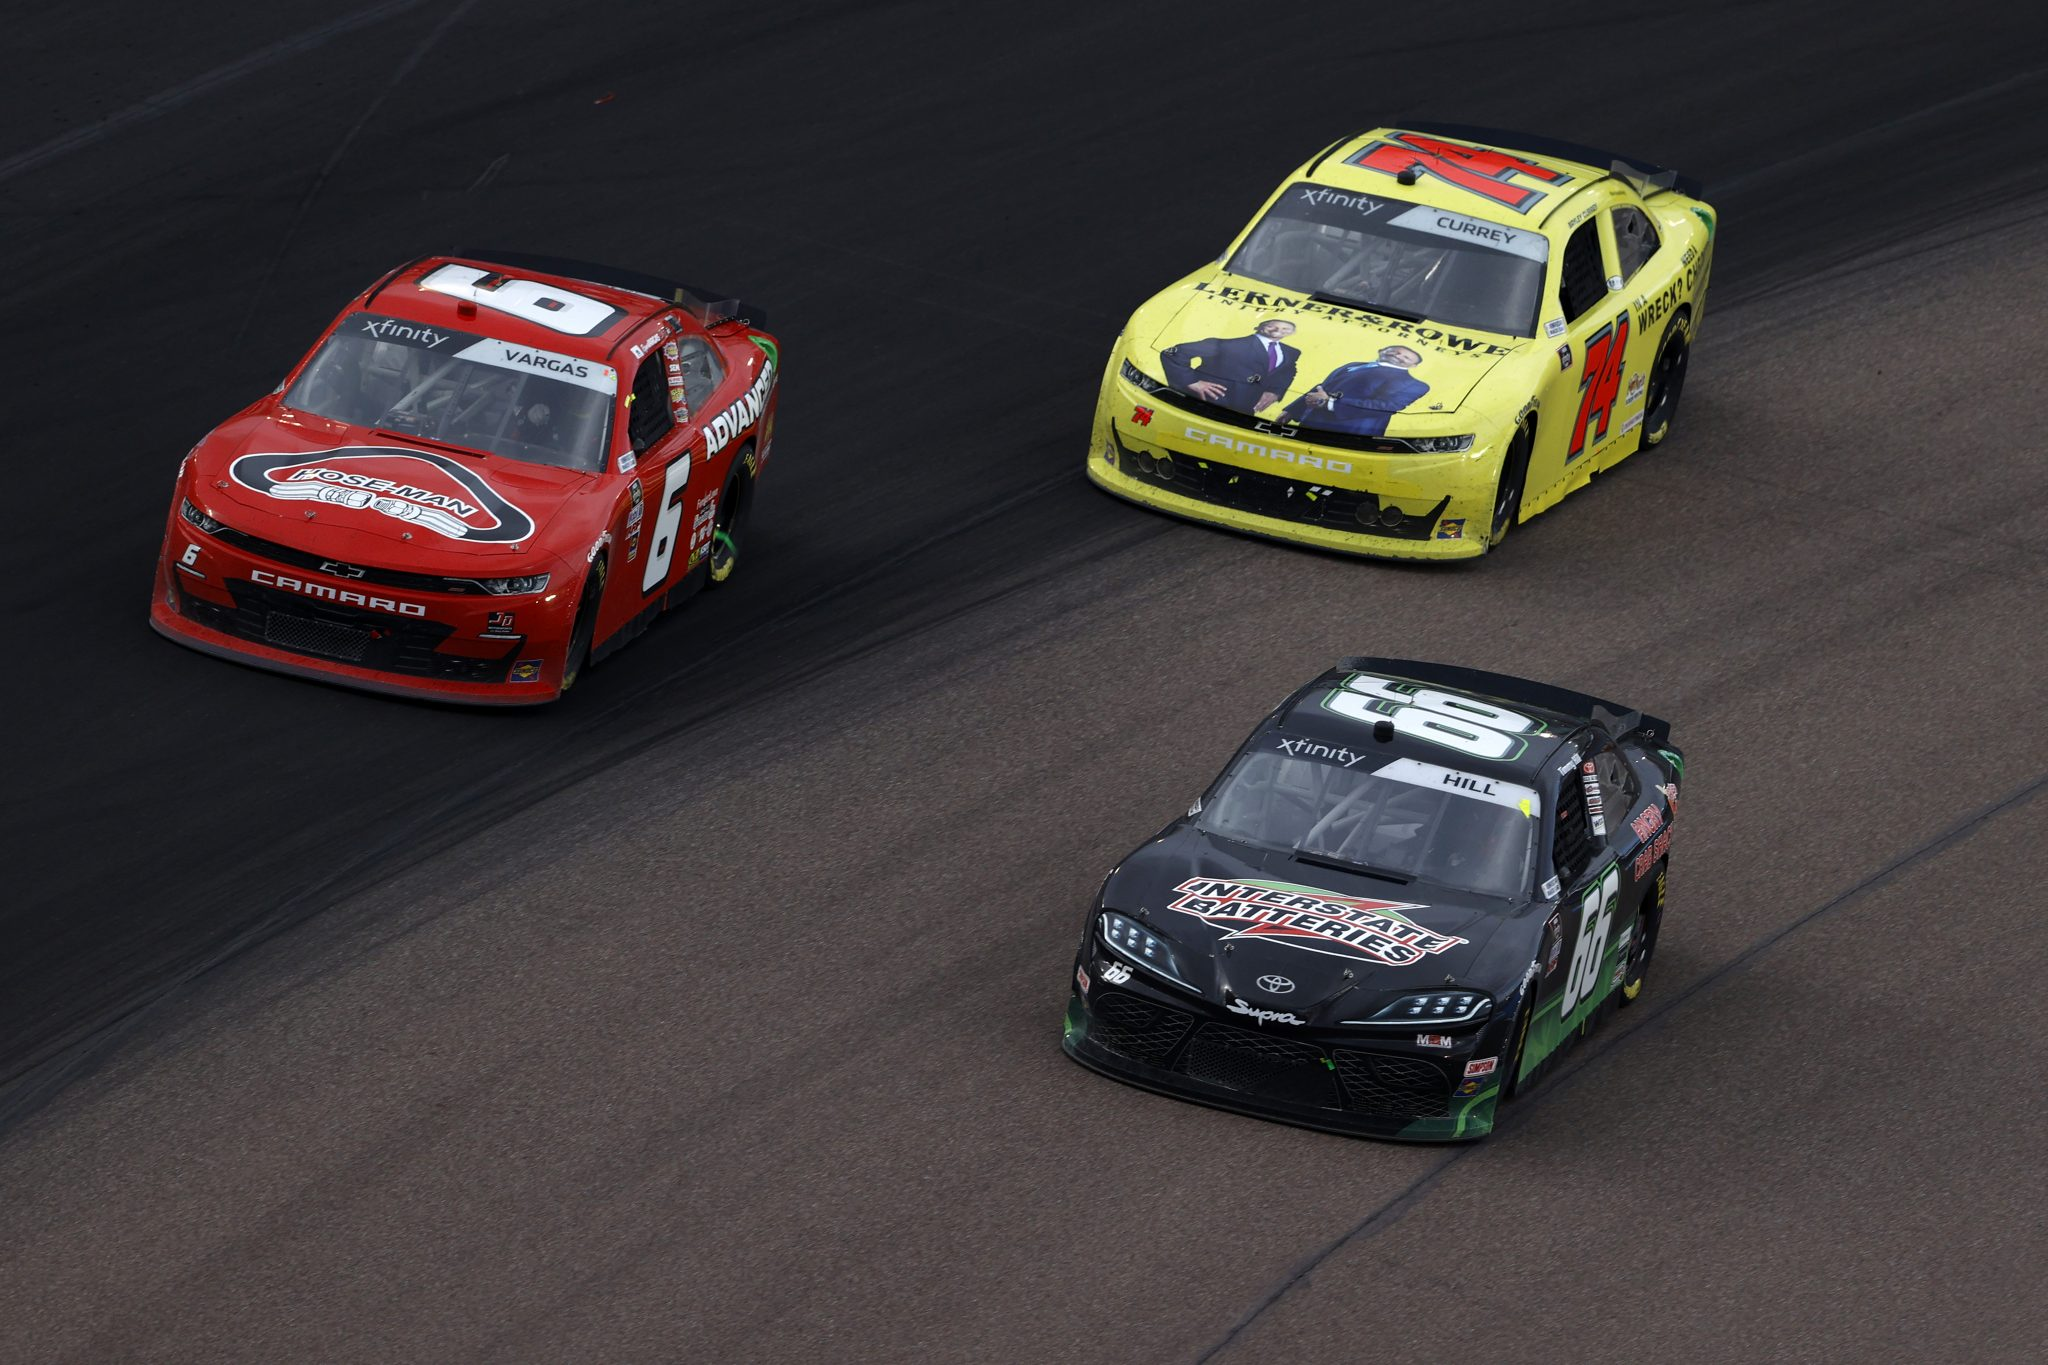 AVONDALE, ARIZONA - MARCH 13: Ryan Vargas, driver of the #6 Hose-Man/Advanced Masonry Chevrolet, Timmy Hill, driver of the #66 LasVegas.net Toyota, and Ty Gibbs, driver of the #54 PristineAuction.com Toyota, race during the NASCAR Xfinity Series Call 811 Before You Dig 200 presented by Arizona 811 at Phoenix Raceway on March 13, 2021 in Avondale, Arizona. (Photo by Christian Petersen/Getty Images) | Getty Images